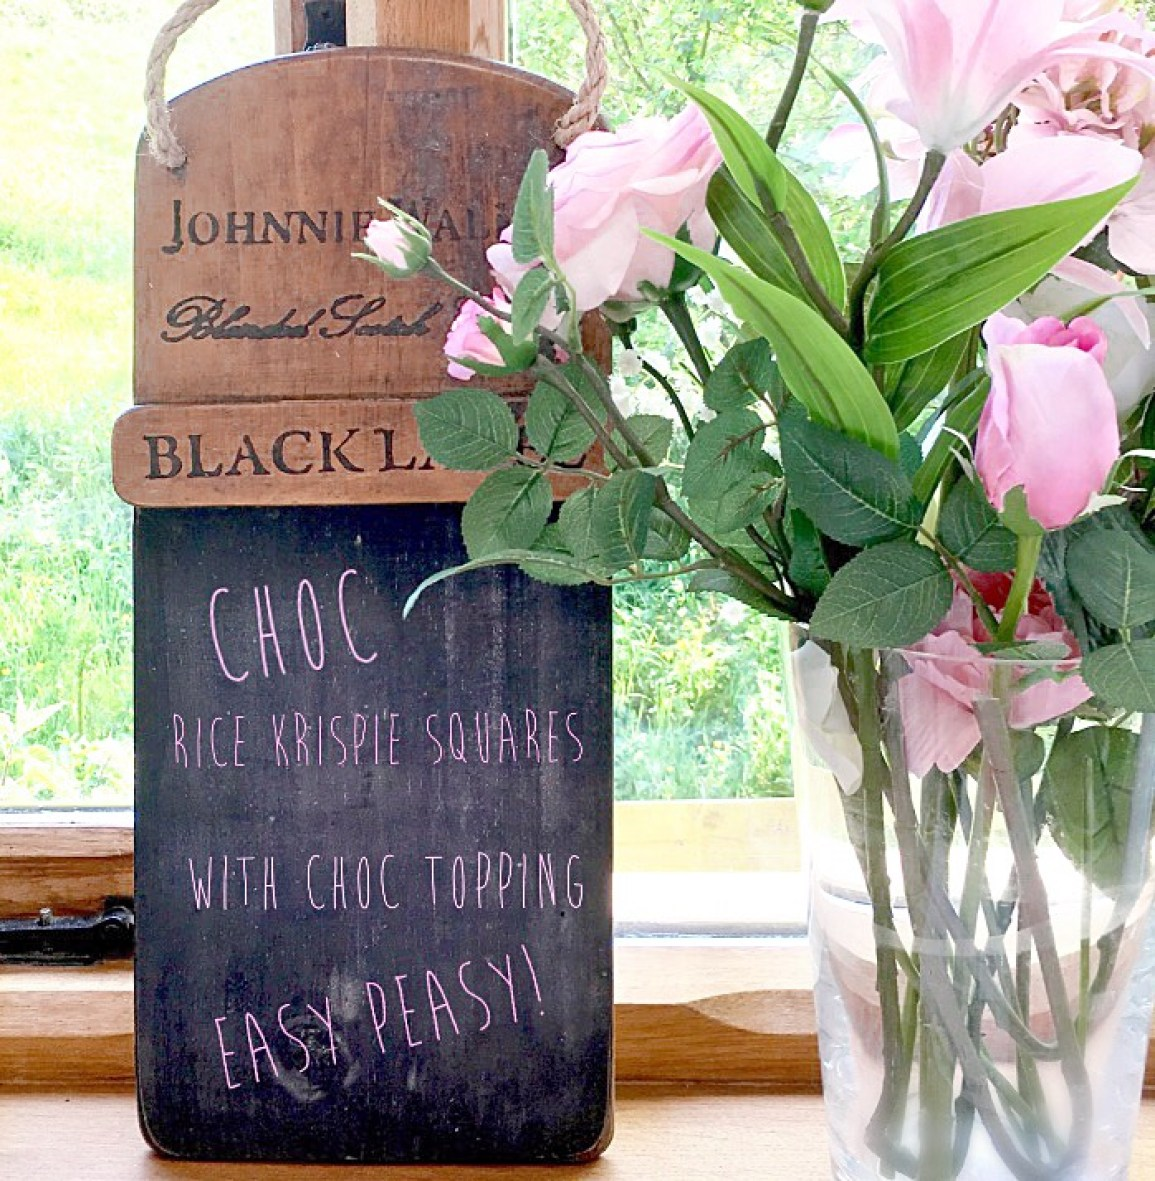 A chalk board with Chocolate Rice Krispie cakes written on it as in a menu